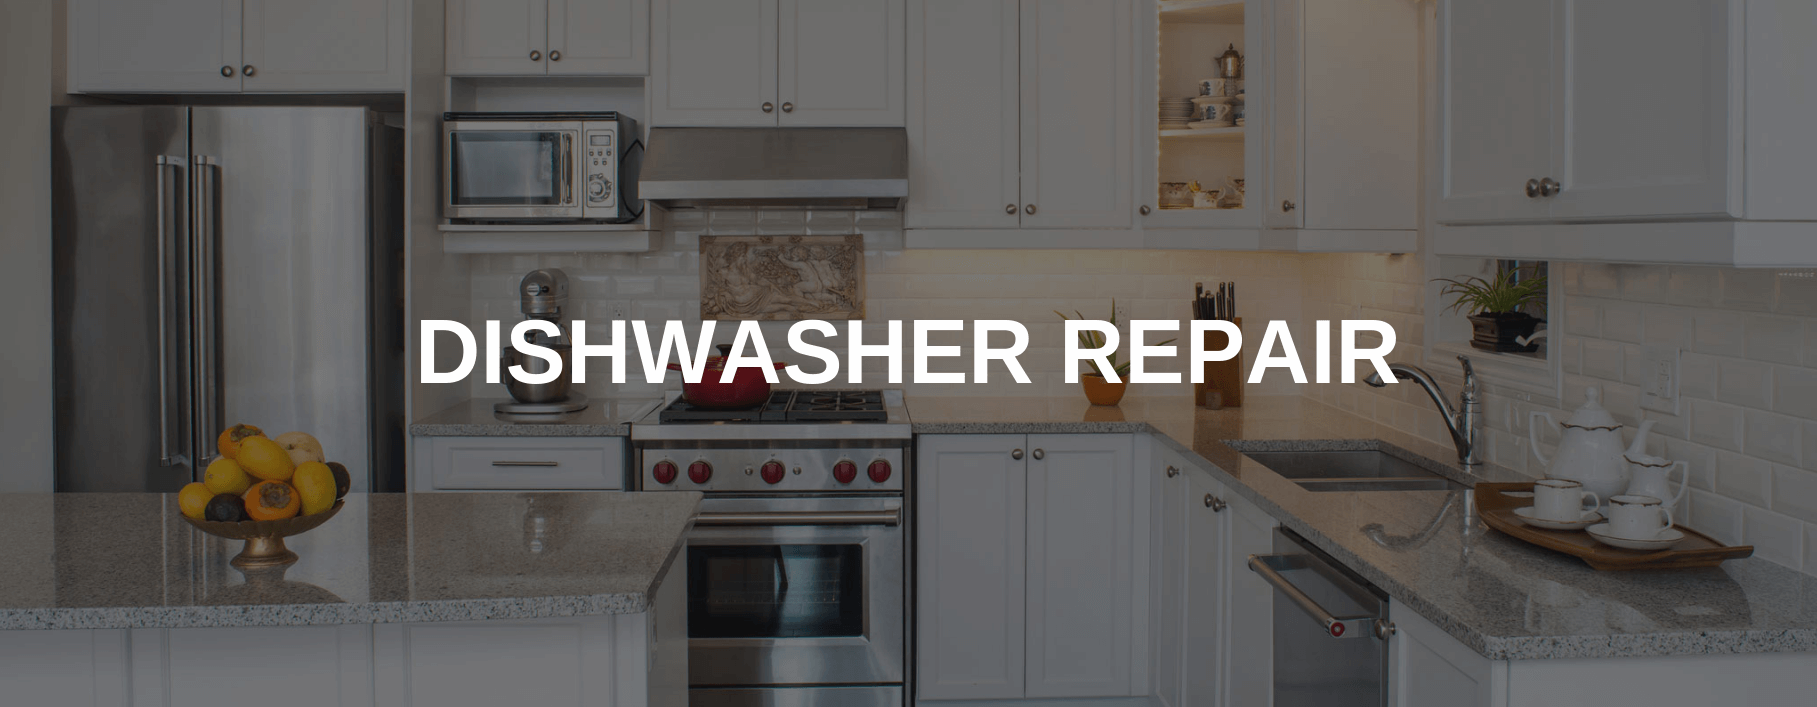 dishwasher repair waterbury